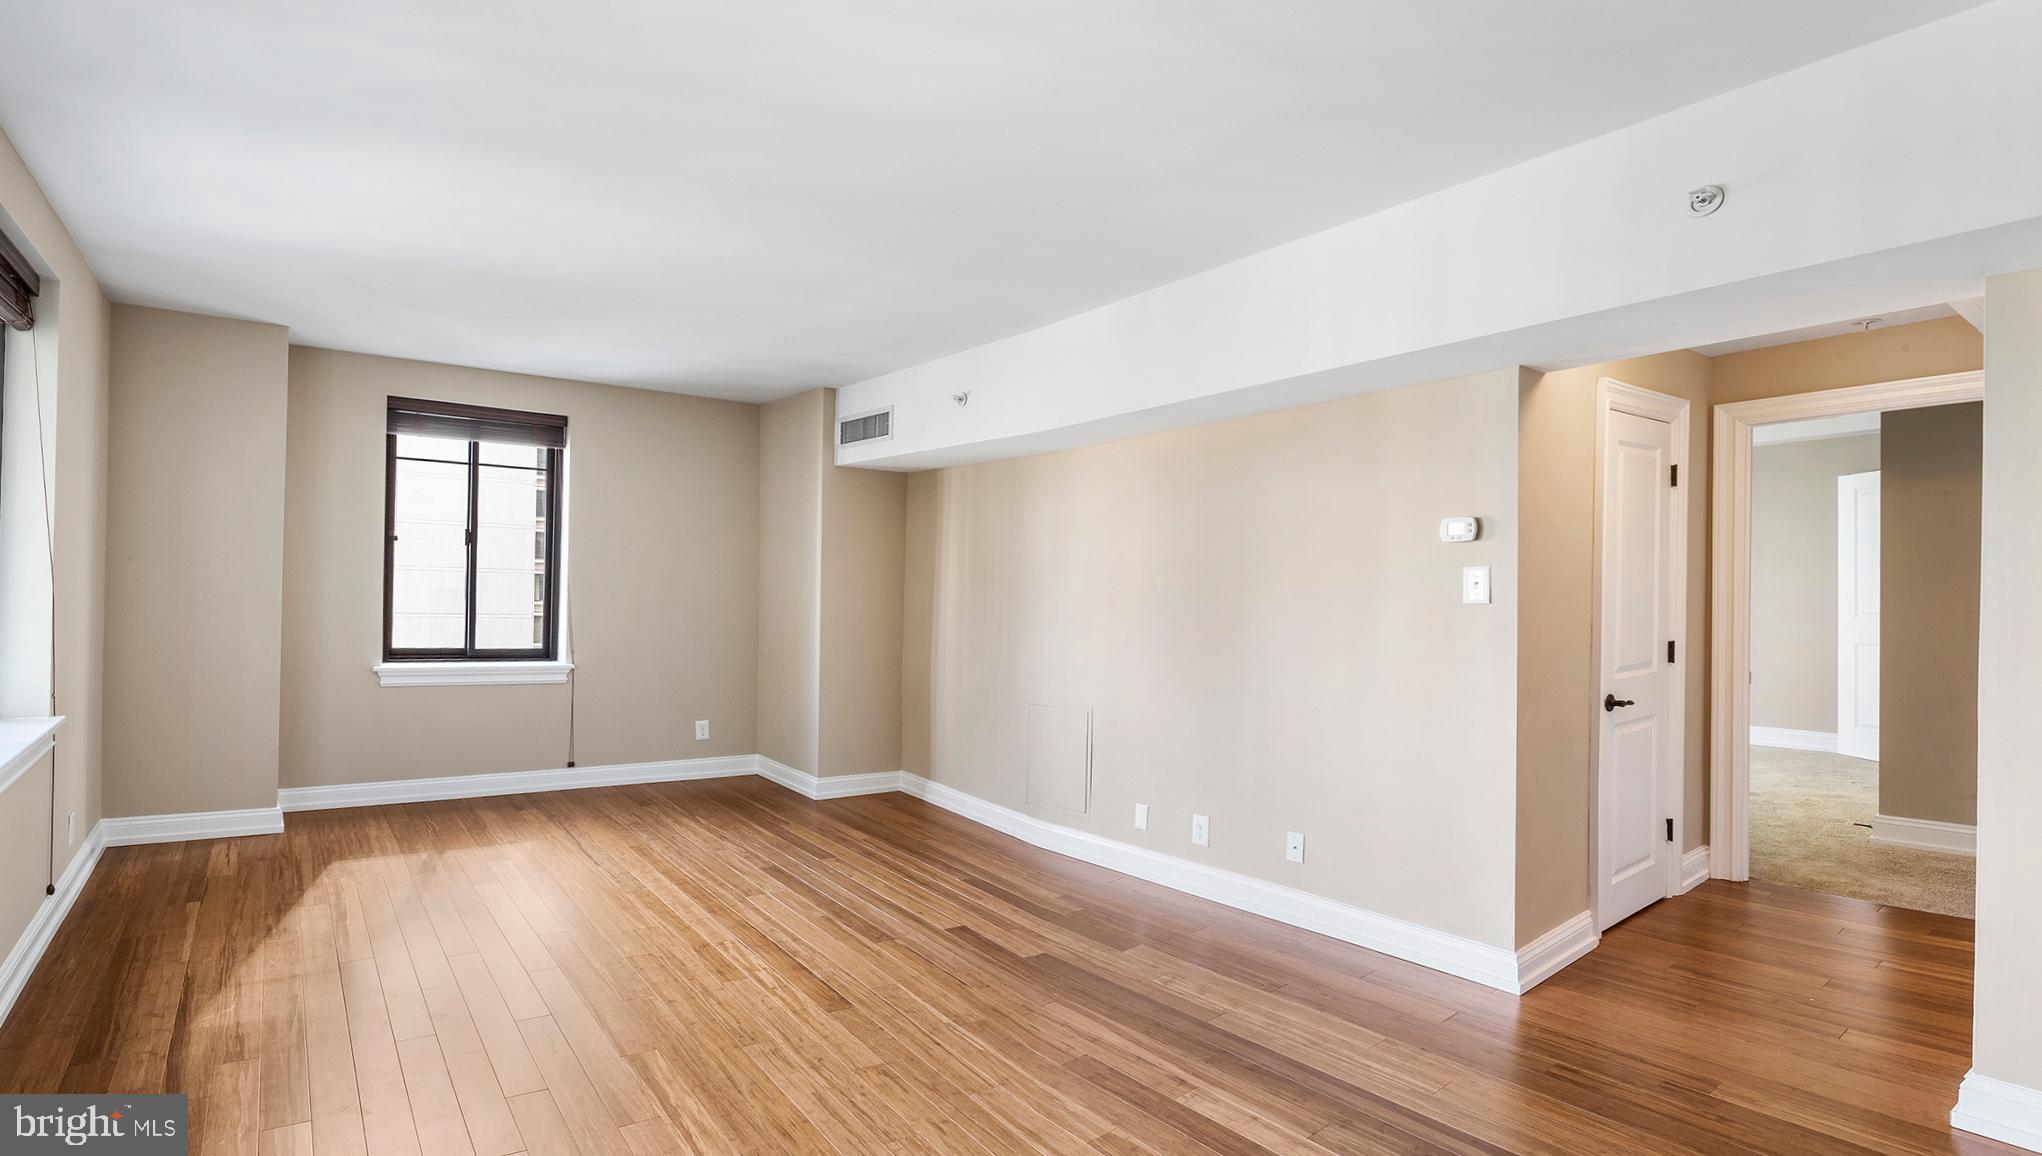 222 W RITTENHOUSE SQUARE, PHILADELPHIA, Pennsylvania 19103, 1 Bedroom Bedrooms, ,1 BathroomBathrooms,Rental,For Rent,222 W RITTENHOUSE SQUARE,PAPH924486